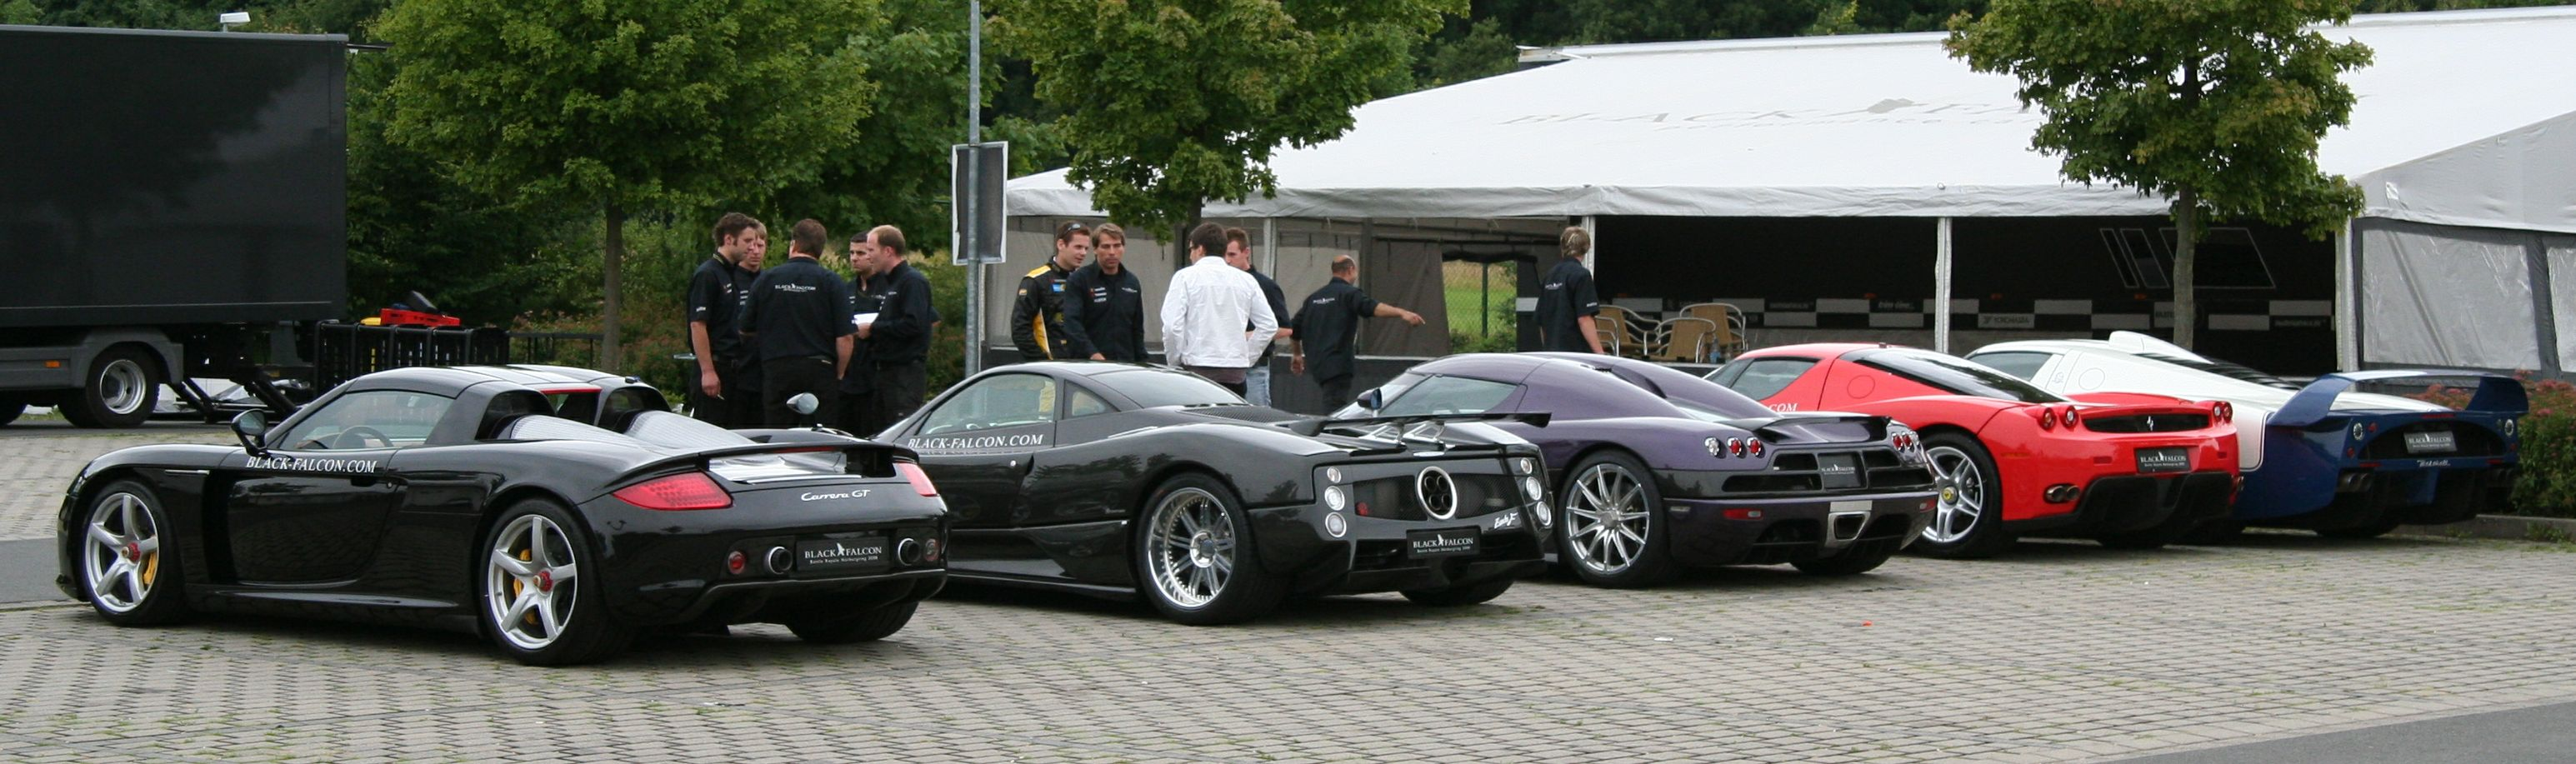 At the 'Ring 2day - SUPERCARS